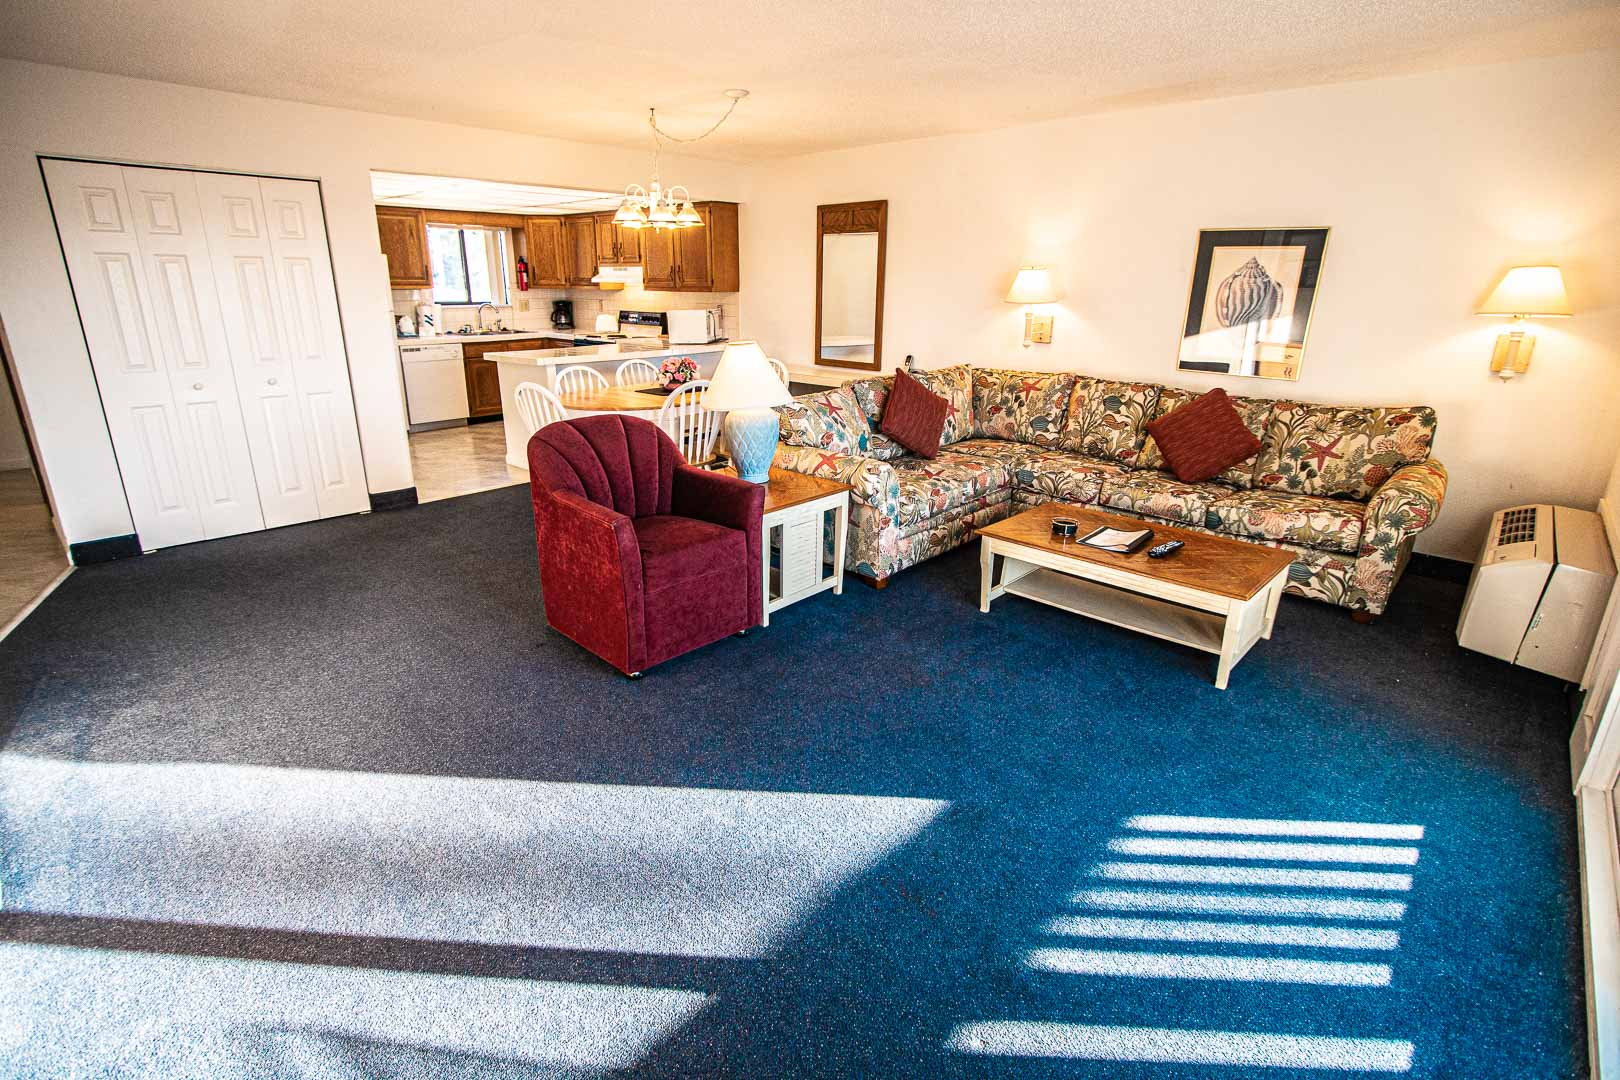 A cozy living room area at VRI's Harbourside II in New Bern, North Carolina.